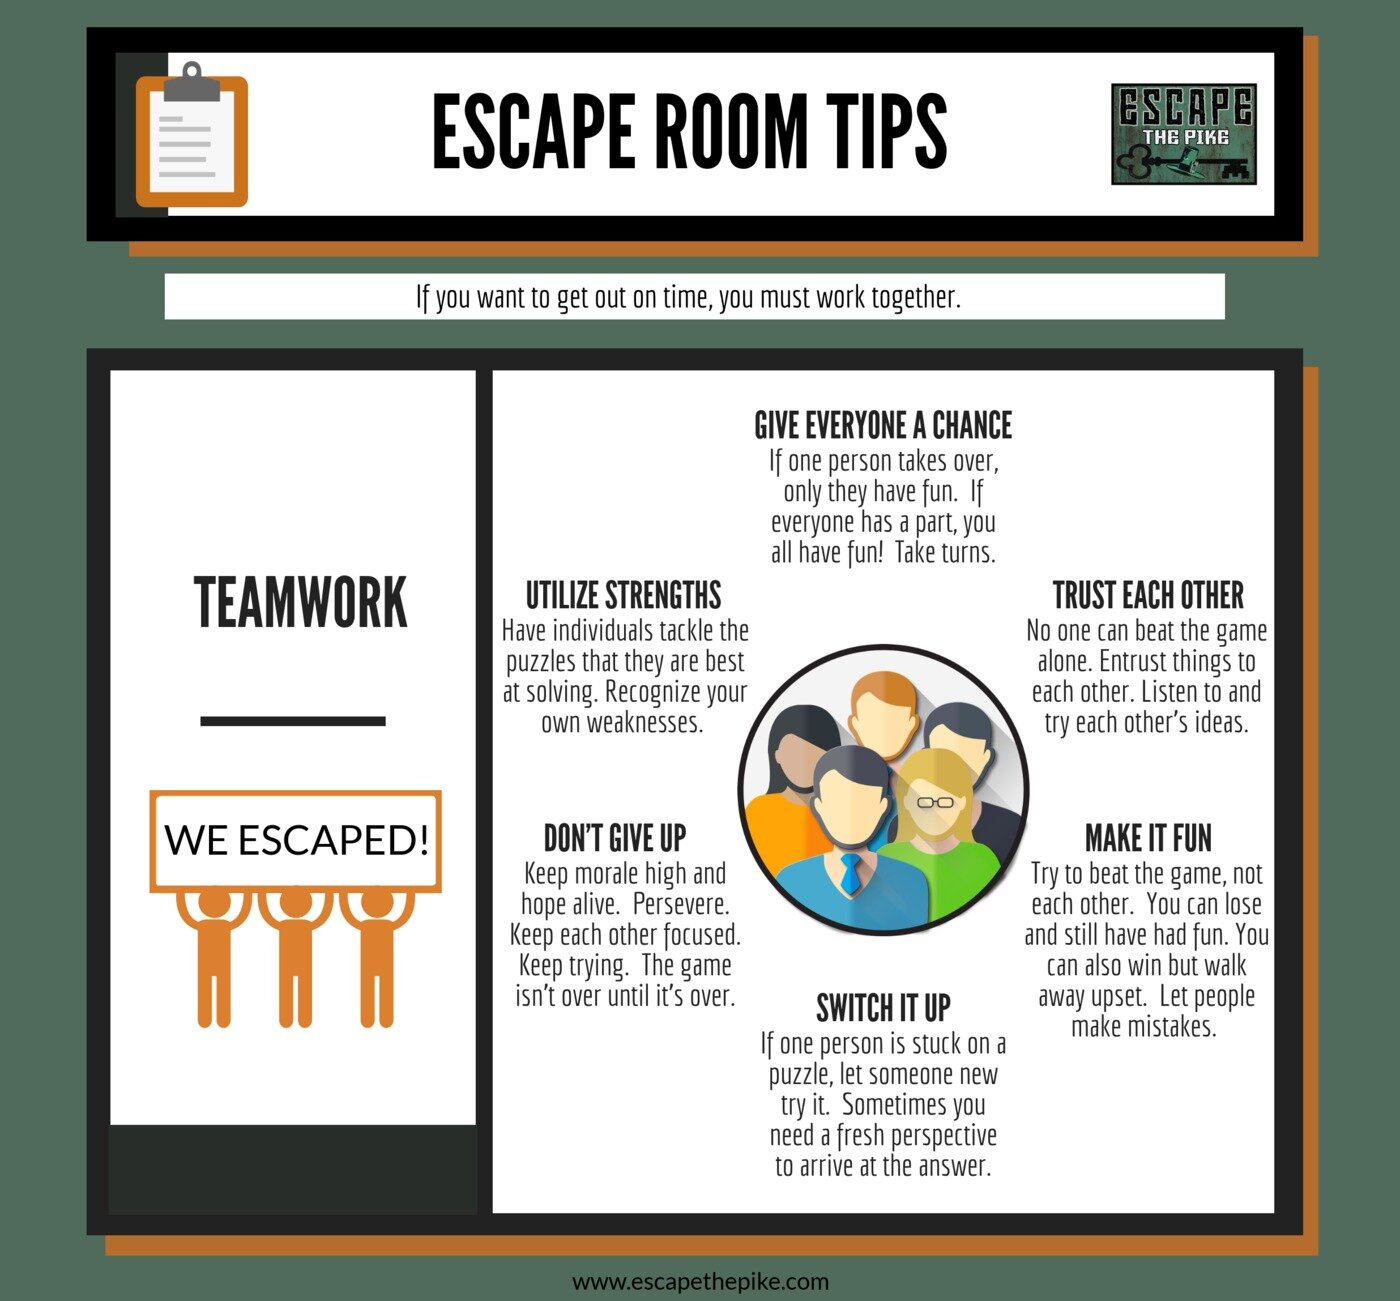 Tip #7- When you play with a team, you have help, another perspective from which to consider things, access to someone with different skill sets and knowledge than you, and someone who can motivate you. Solving problems as a team can be a great way to build your relationships with others. For a team to thrive under pressure, the members must do what they can to contribute, involve everyone, and keep things positive.